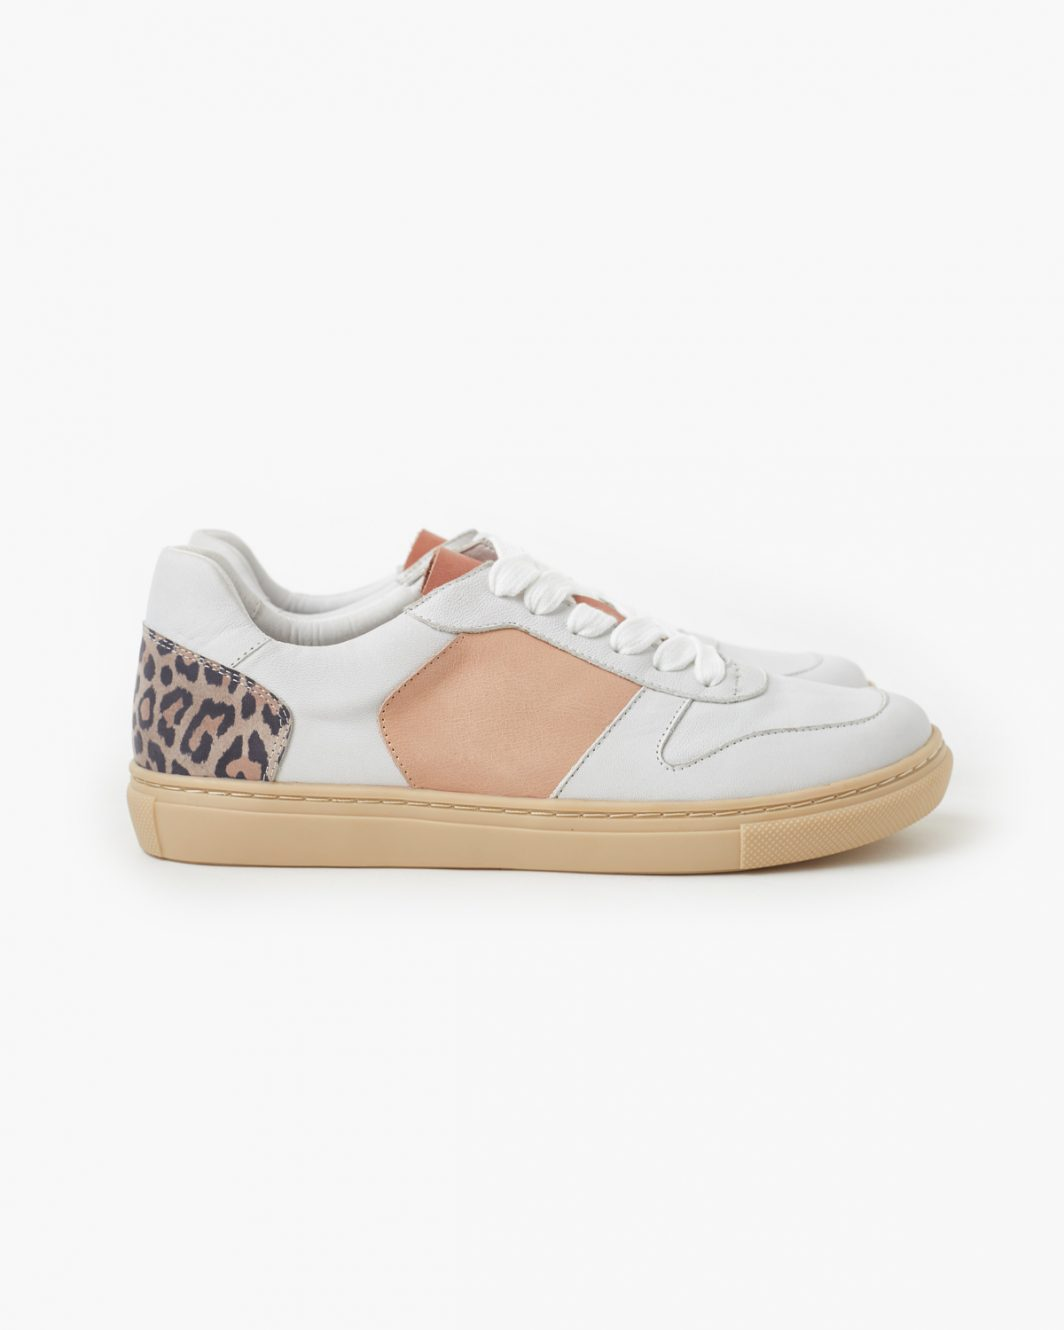 Tao Leather Sneaker - Taupe Leopard 3